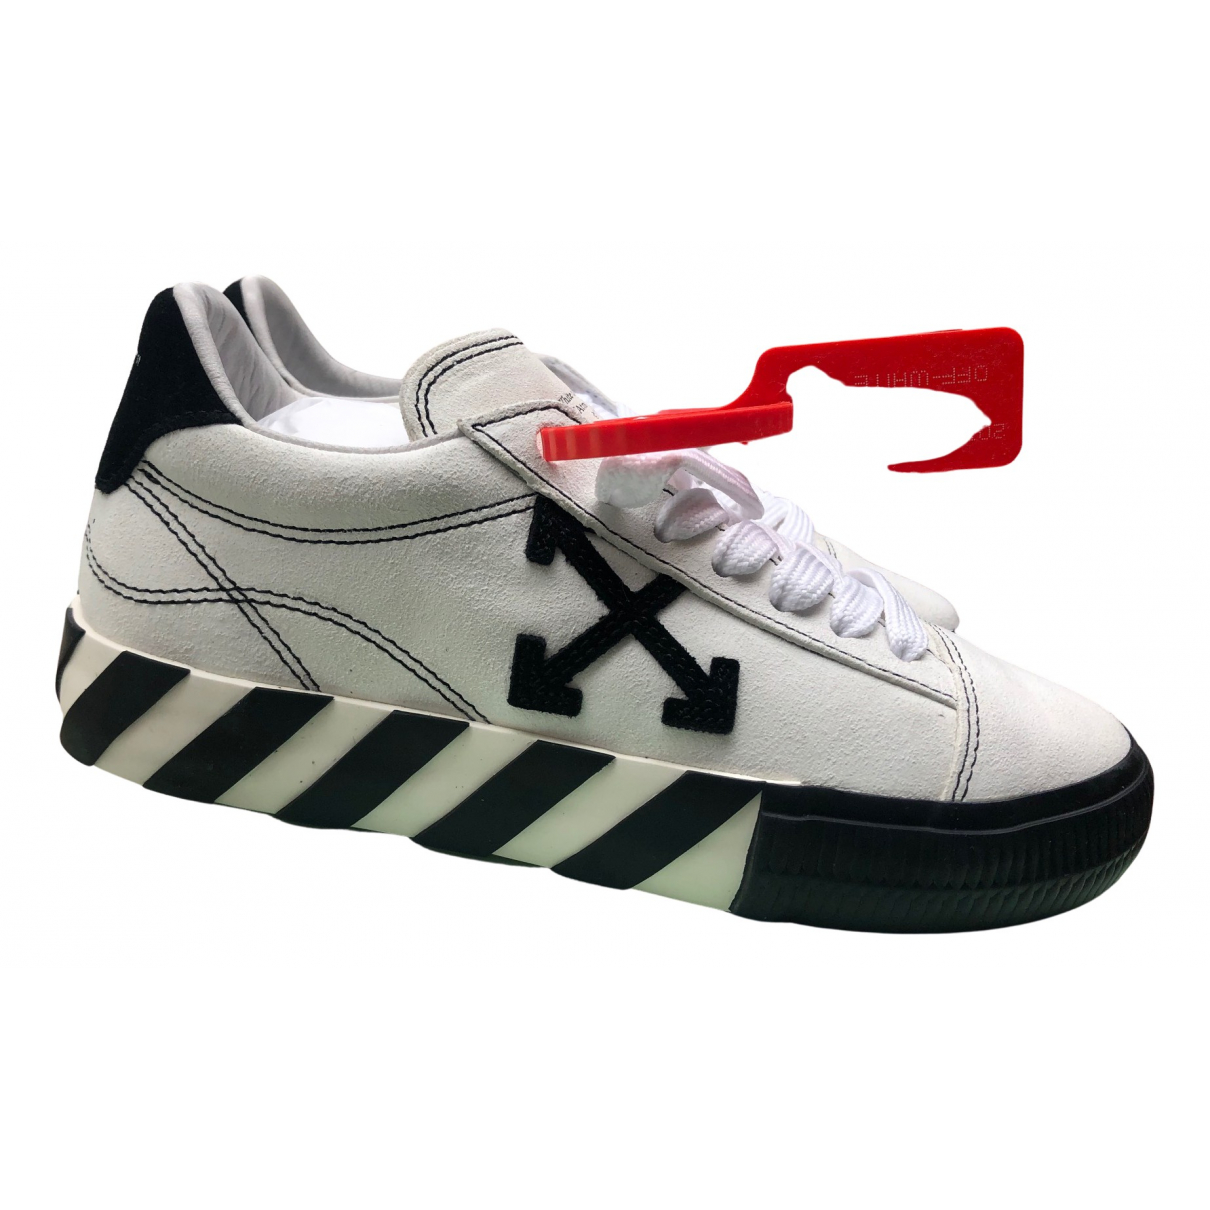 Off-white Vulcalized White Leather Trainers for Women 40 EU